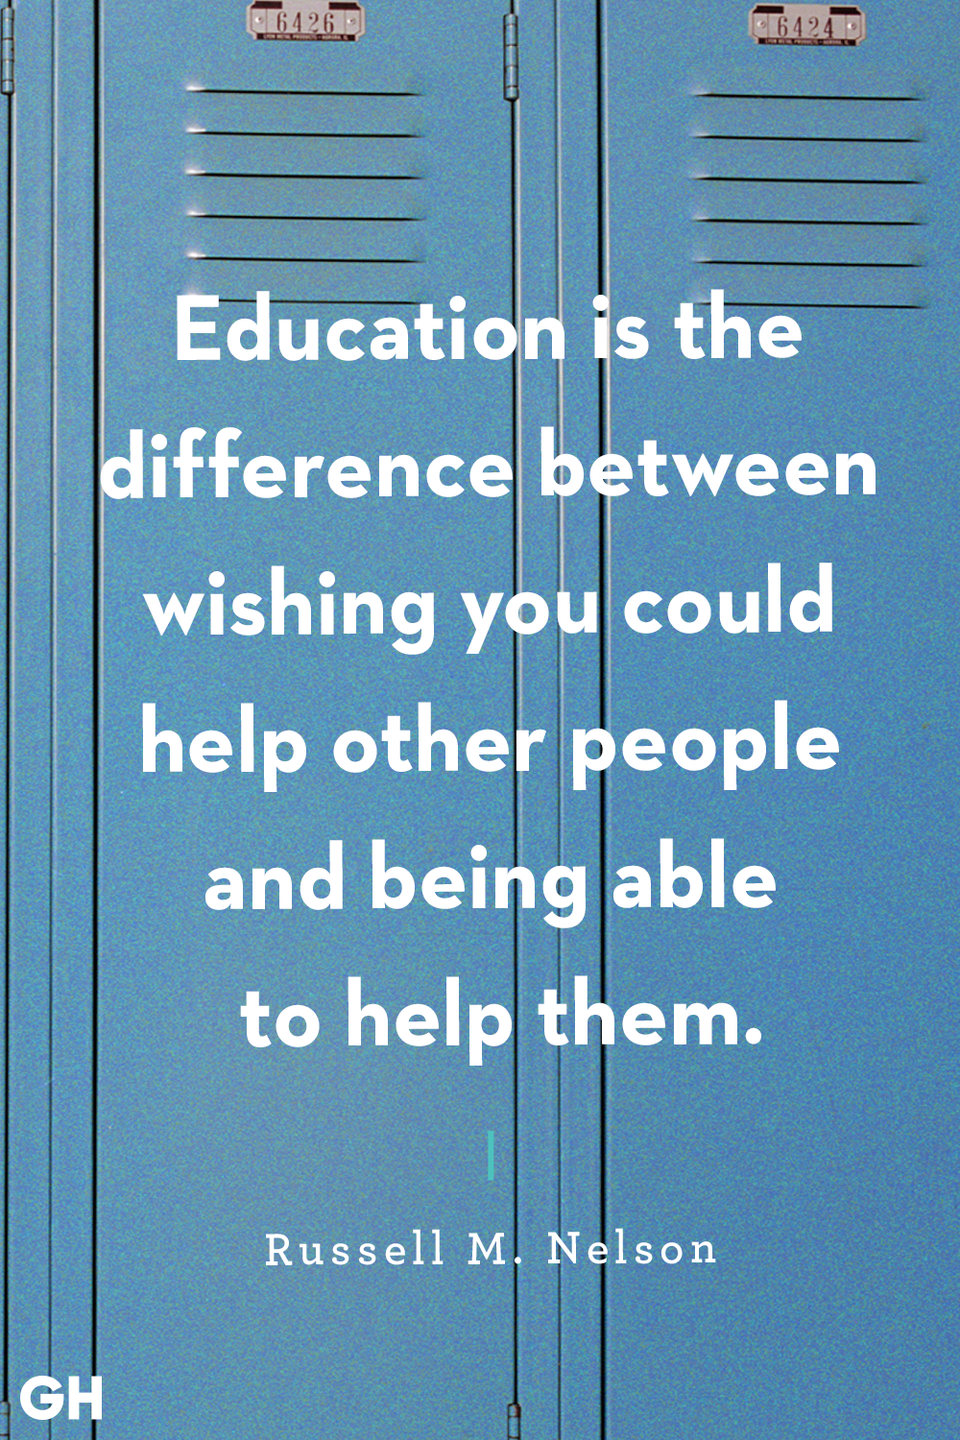 <p>Education is the difference between wishing you could help other people and being able to help them.</p>